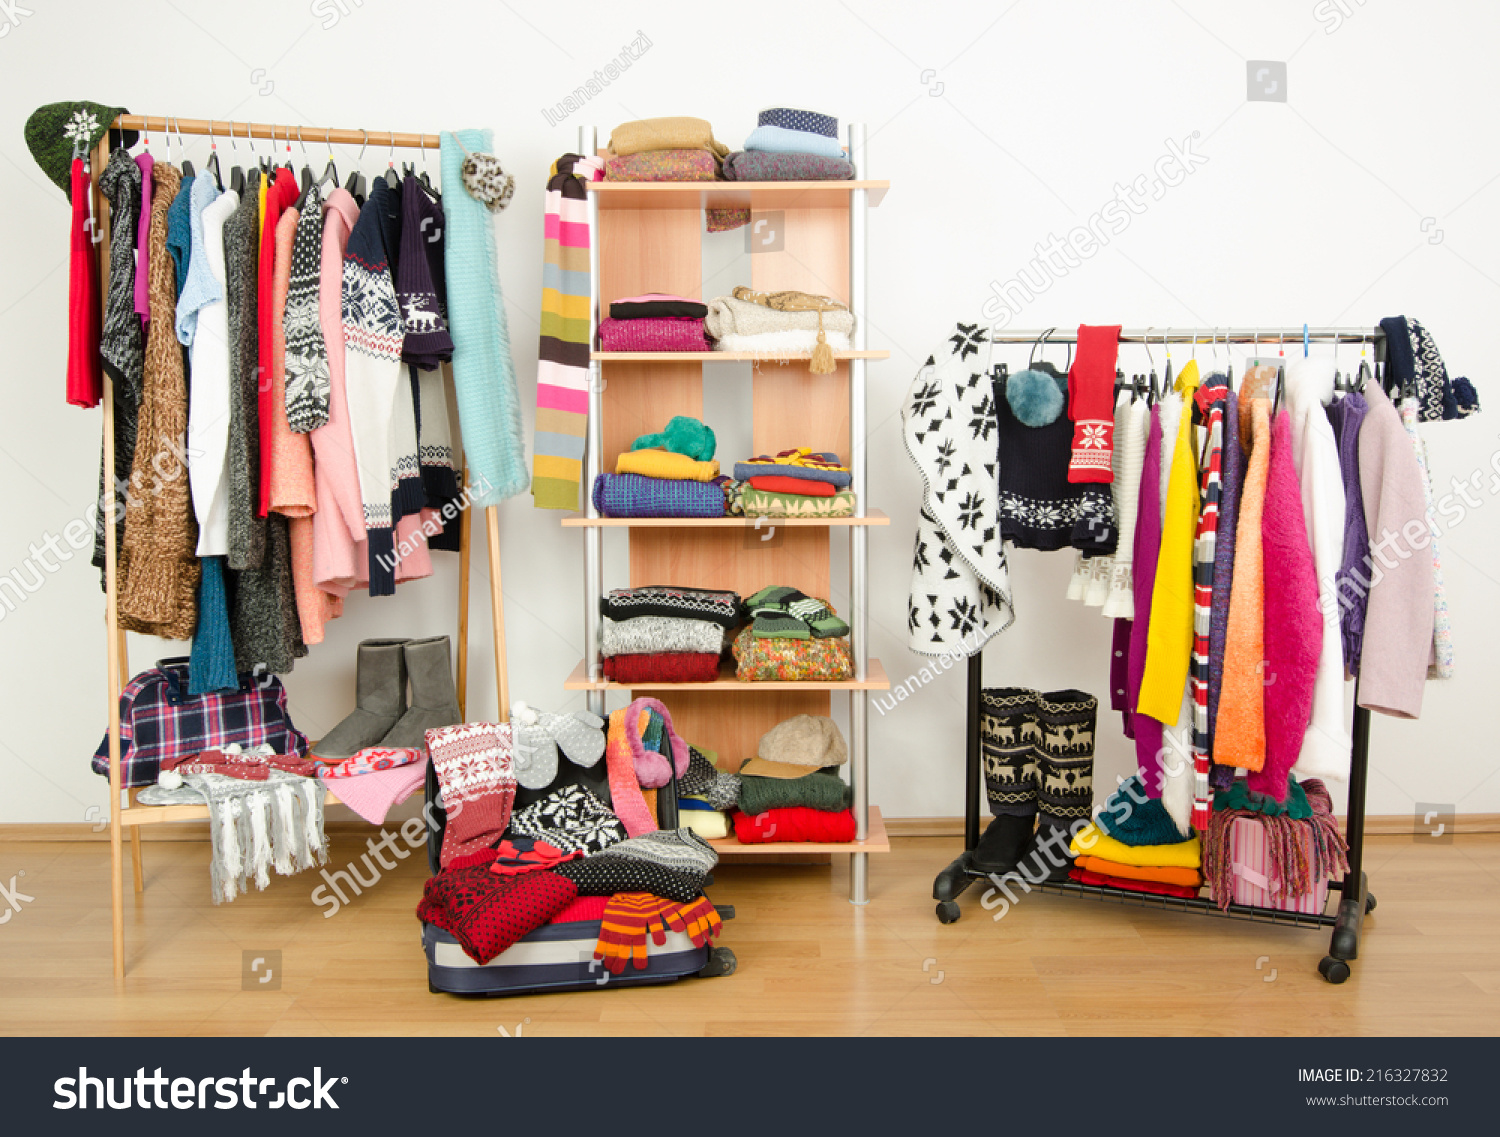 Packing The Suitcase For Winter Vacation. Wardrobe With Clothes Nicely  Arranged And A Full Luggage